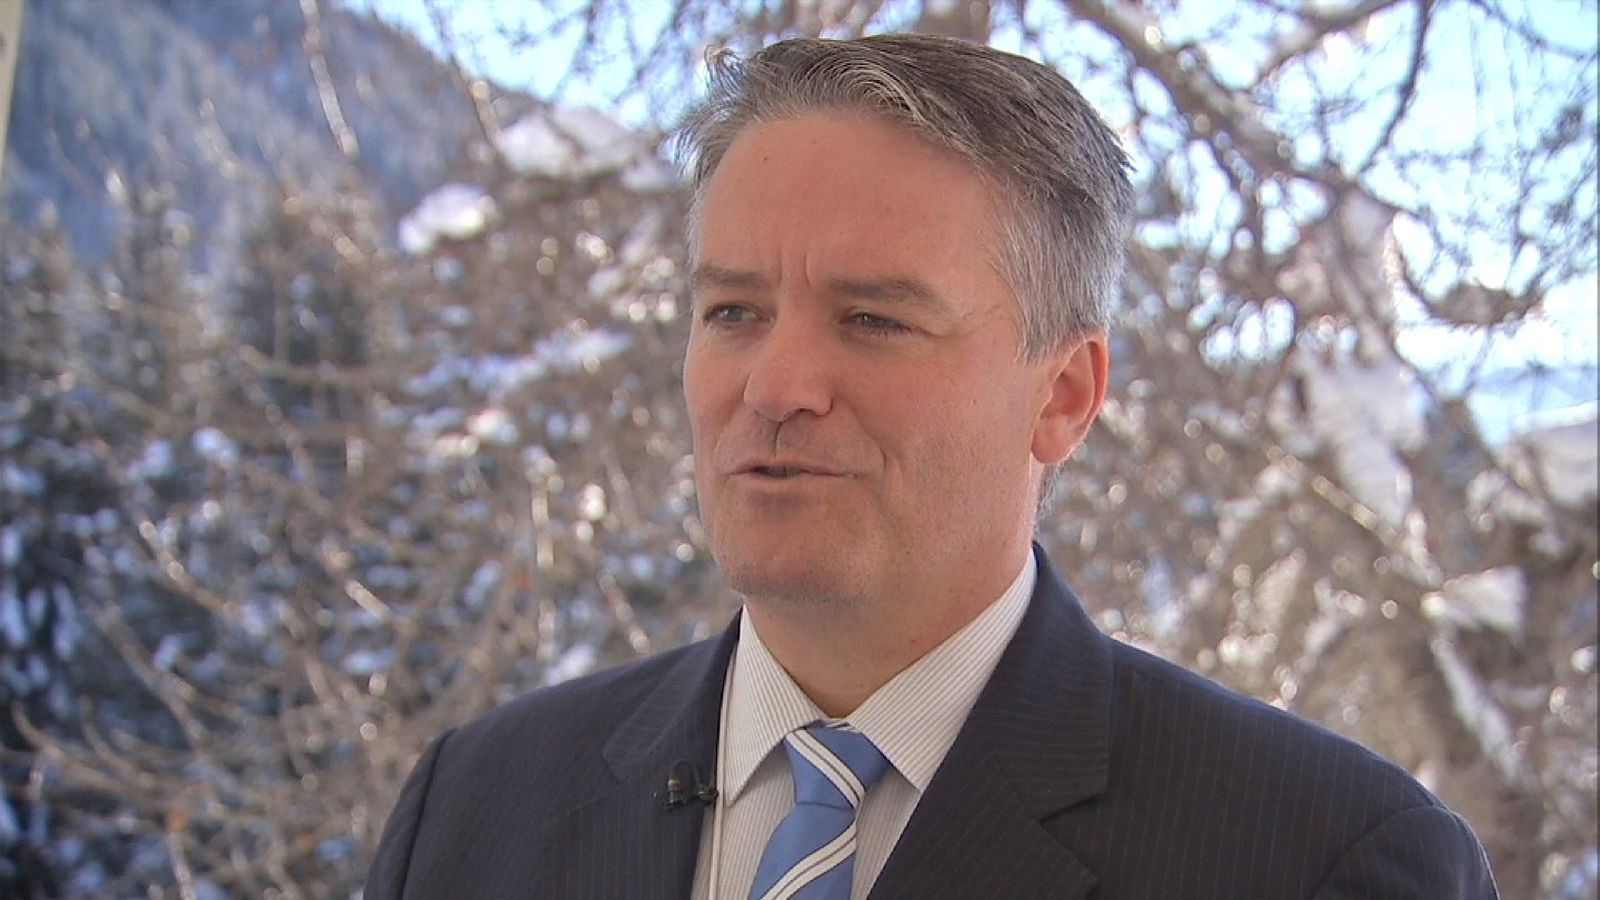 Australia's Finance Minister talks about deal with the UK